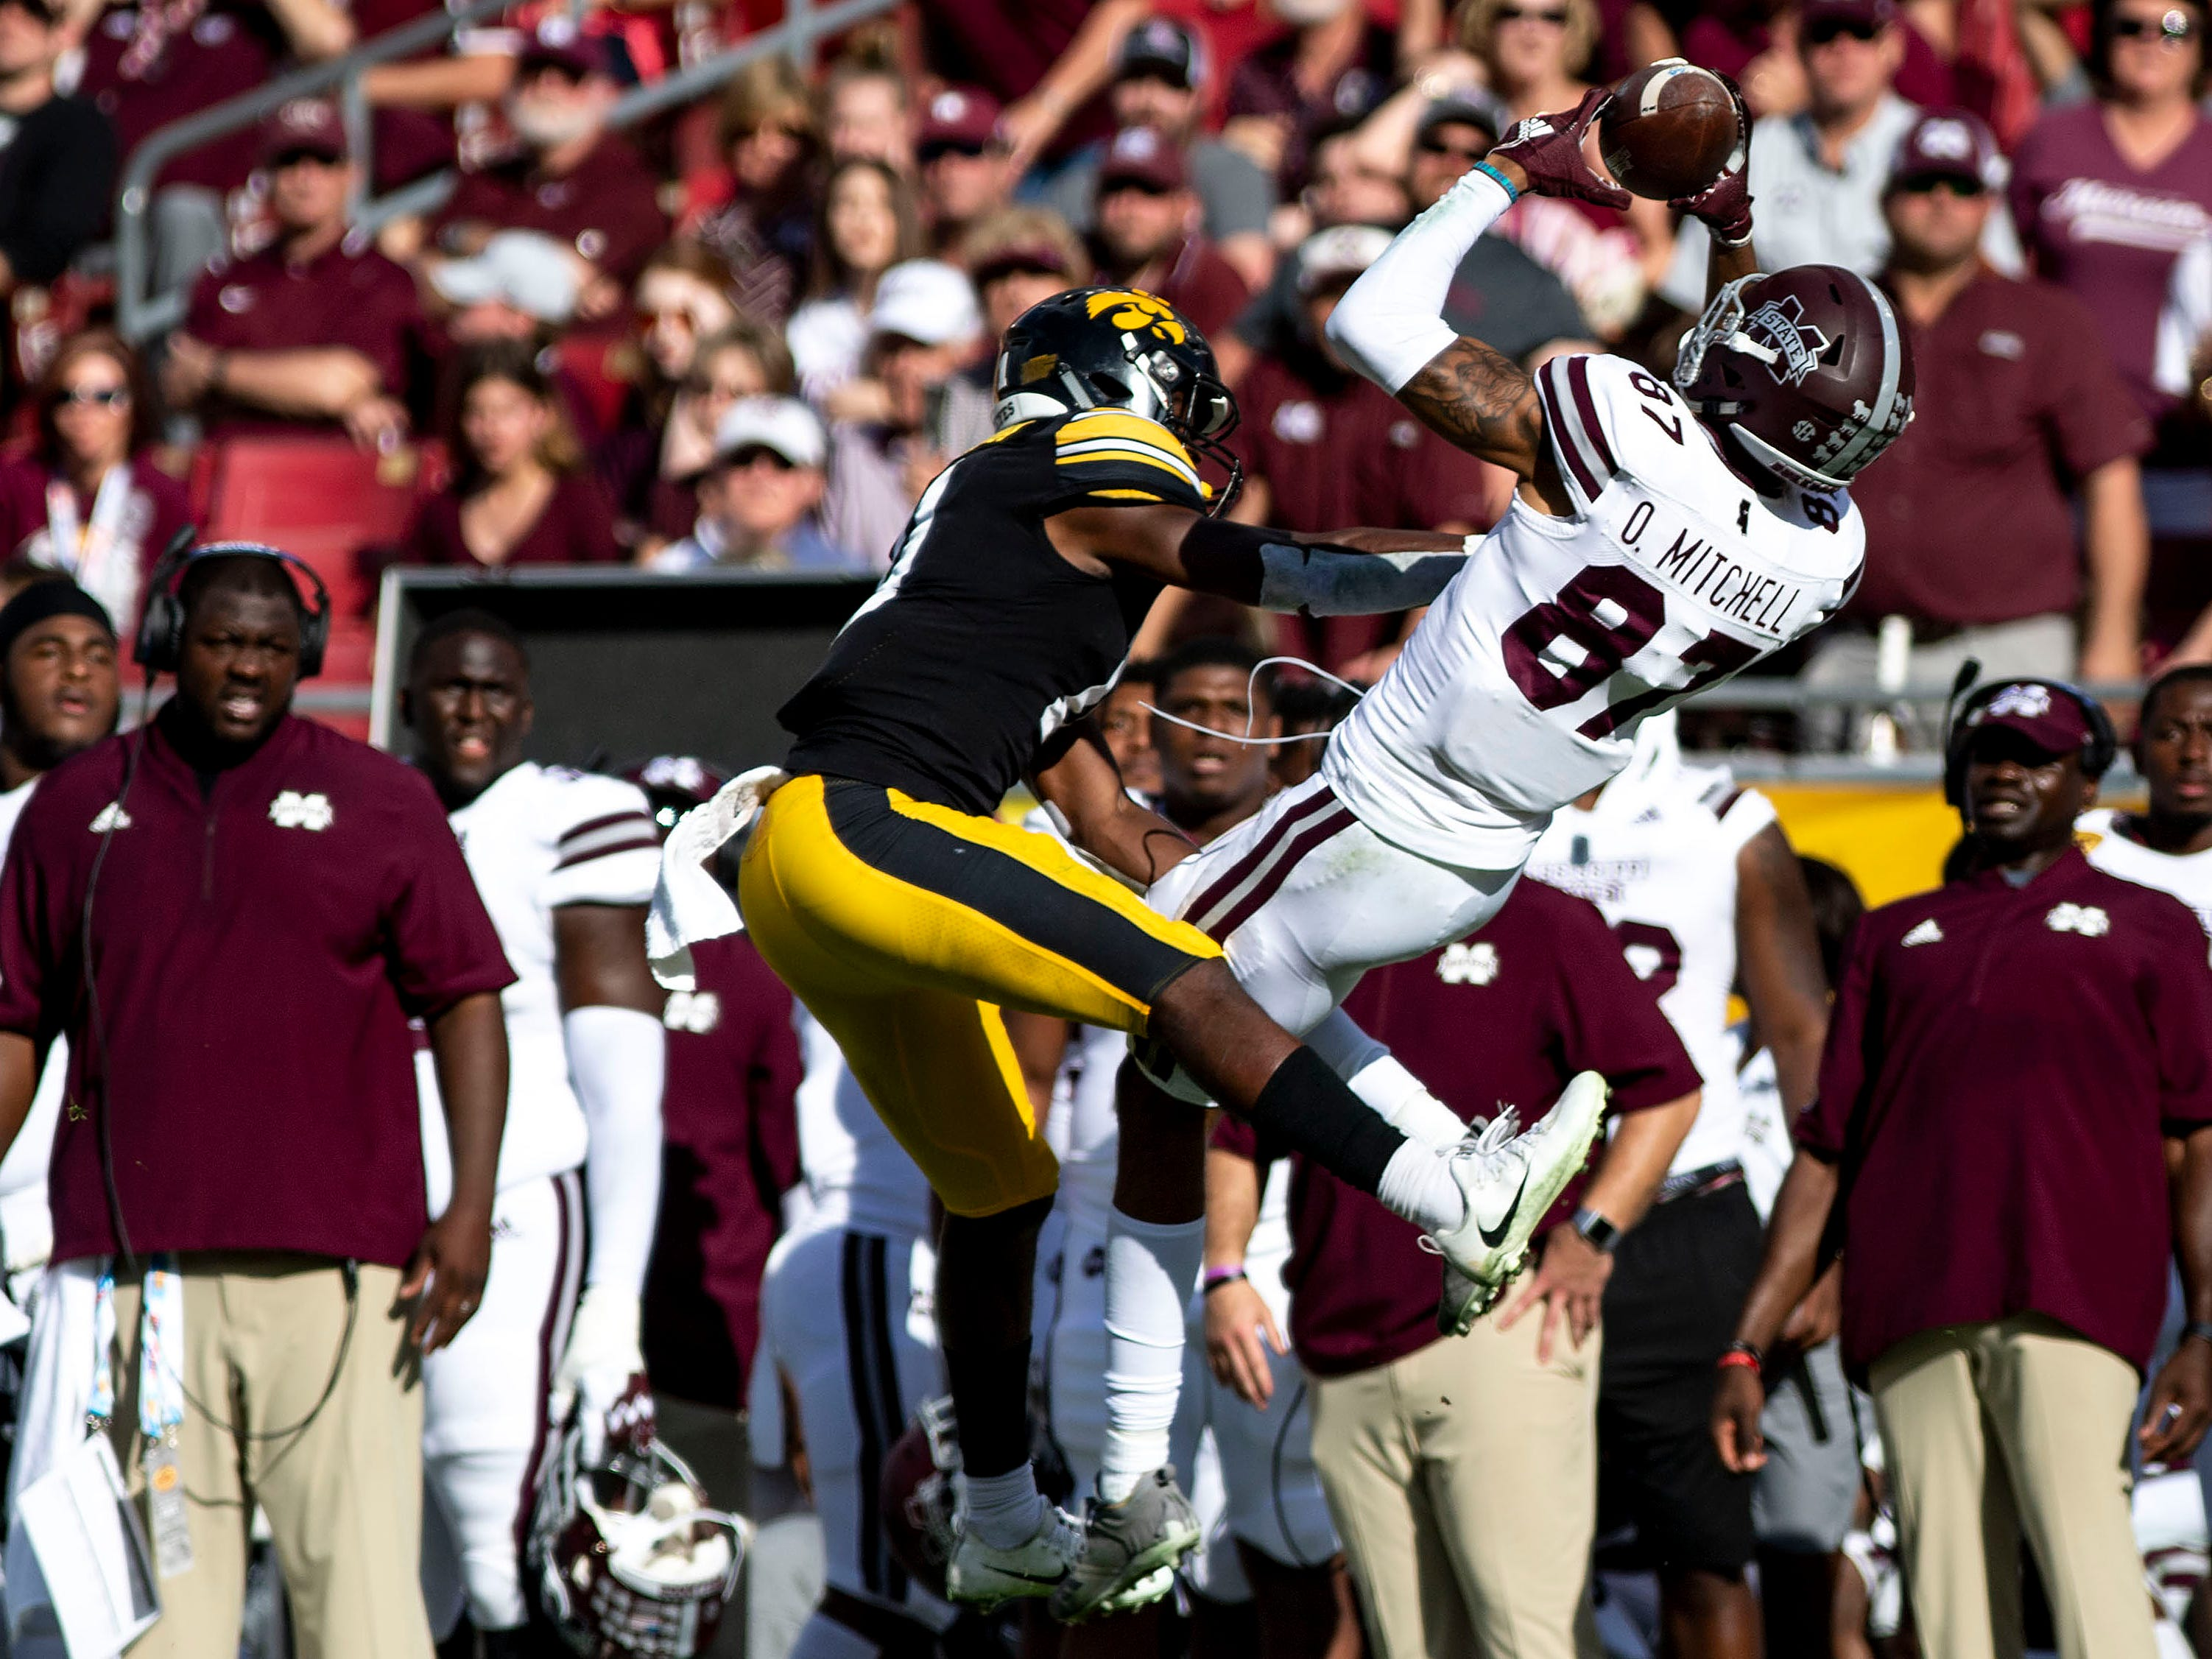 Mississippi State wide receiver Osirus Mitchell makes a reception in front of Iowa defensive back Michael Ojemudia  during the fourth quarter of the 2019 Outback Bowl.